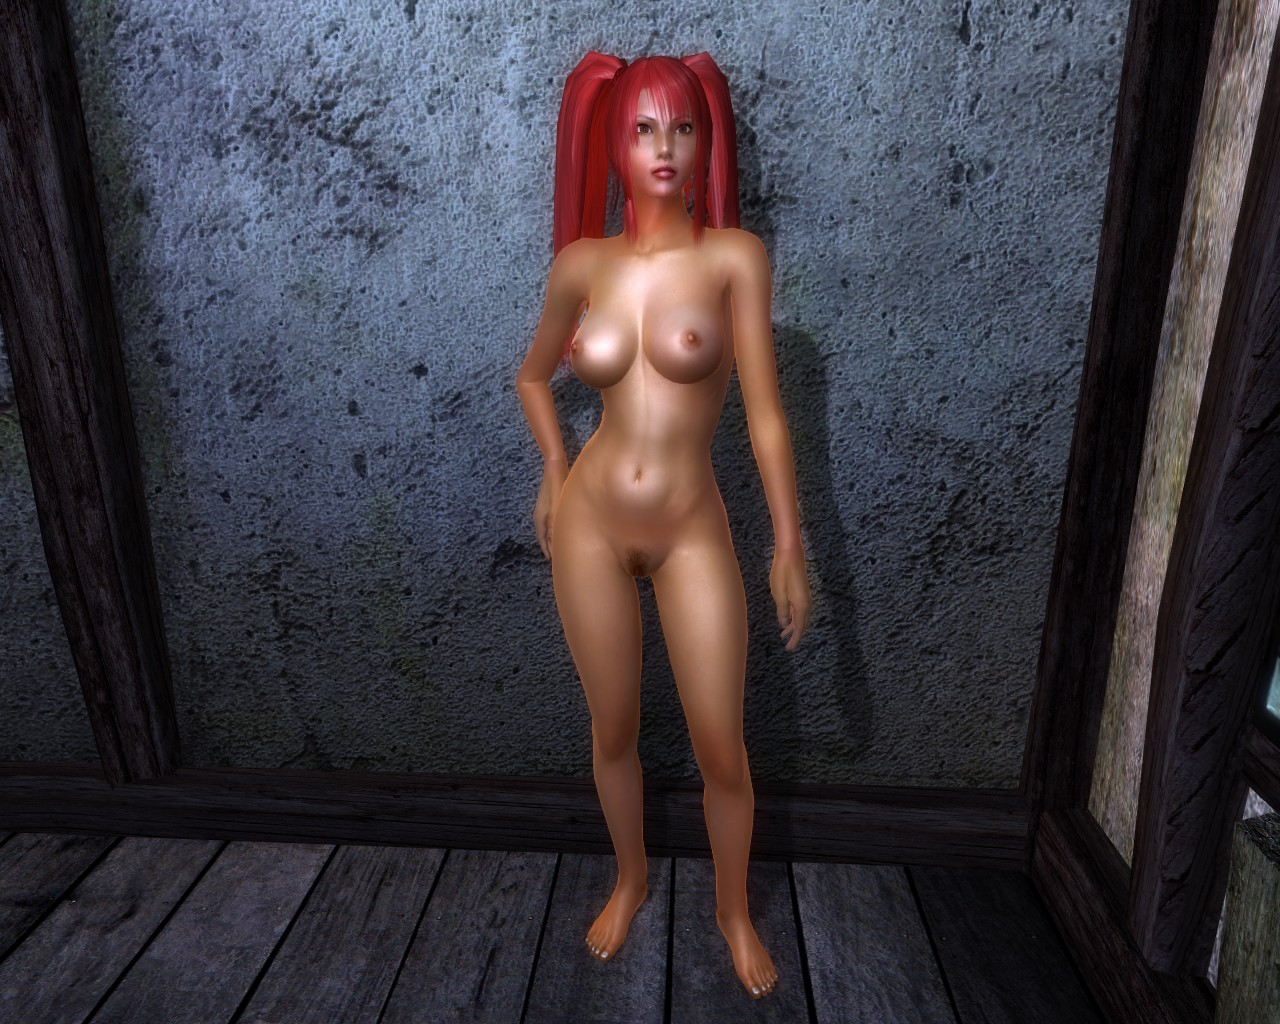 Oblivion nude 360 hentia nasty model